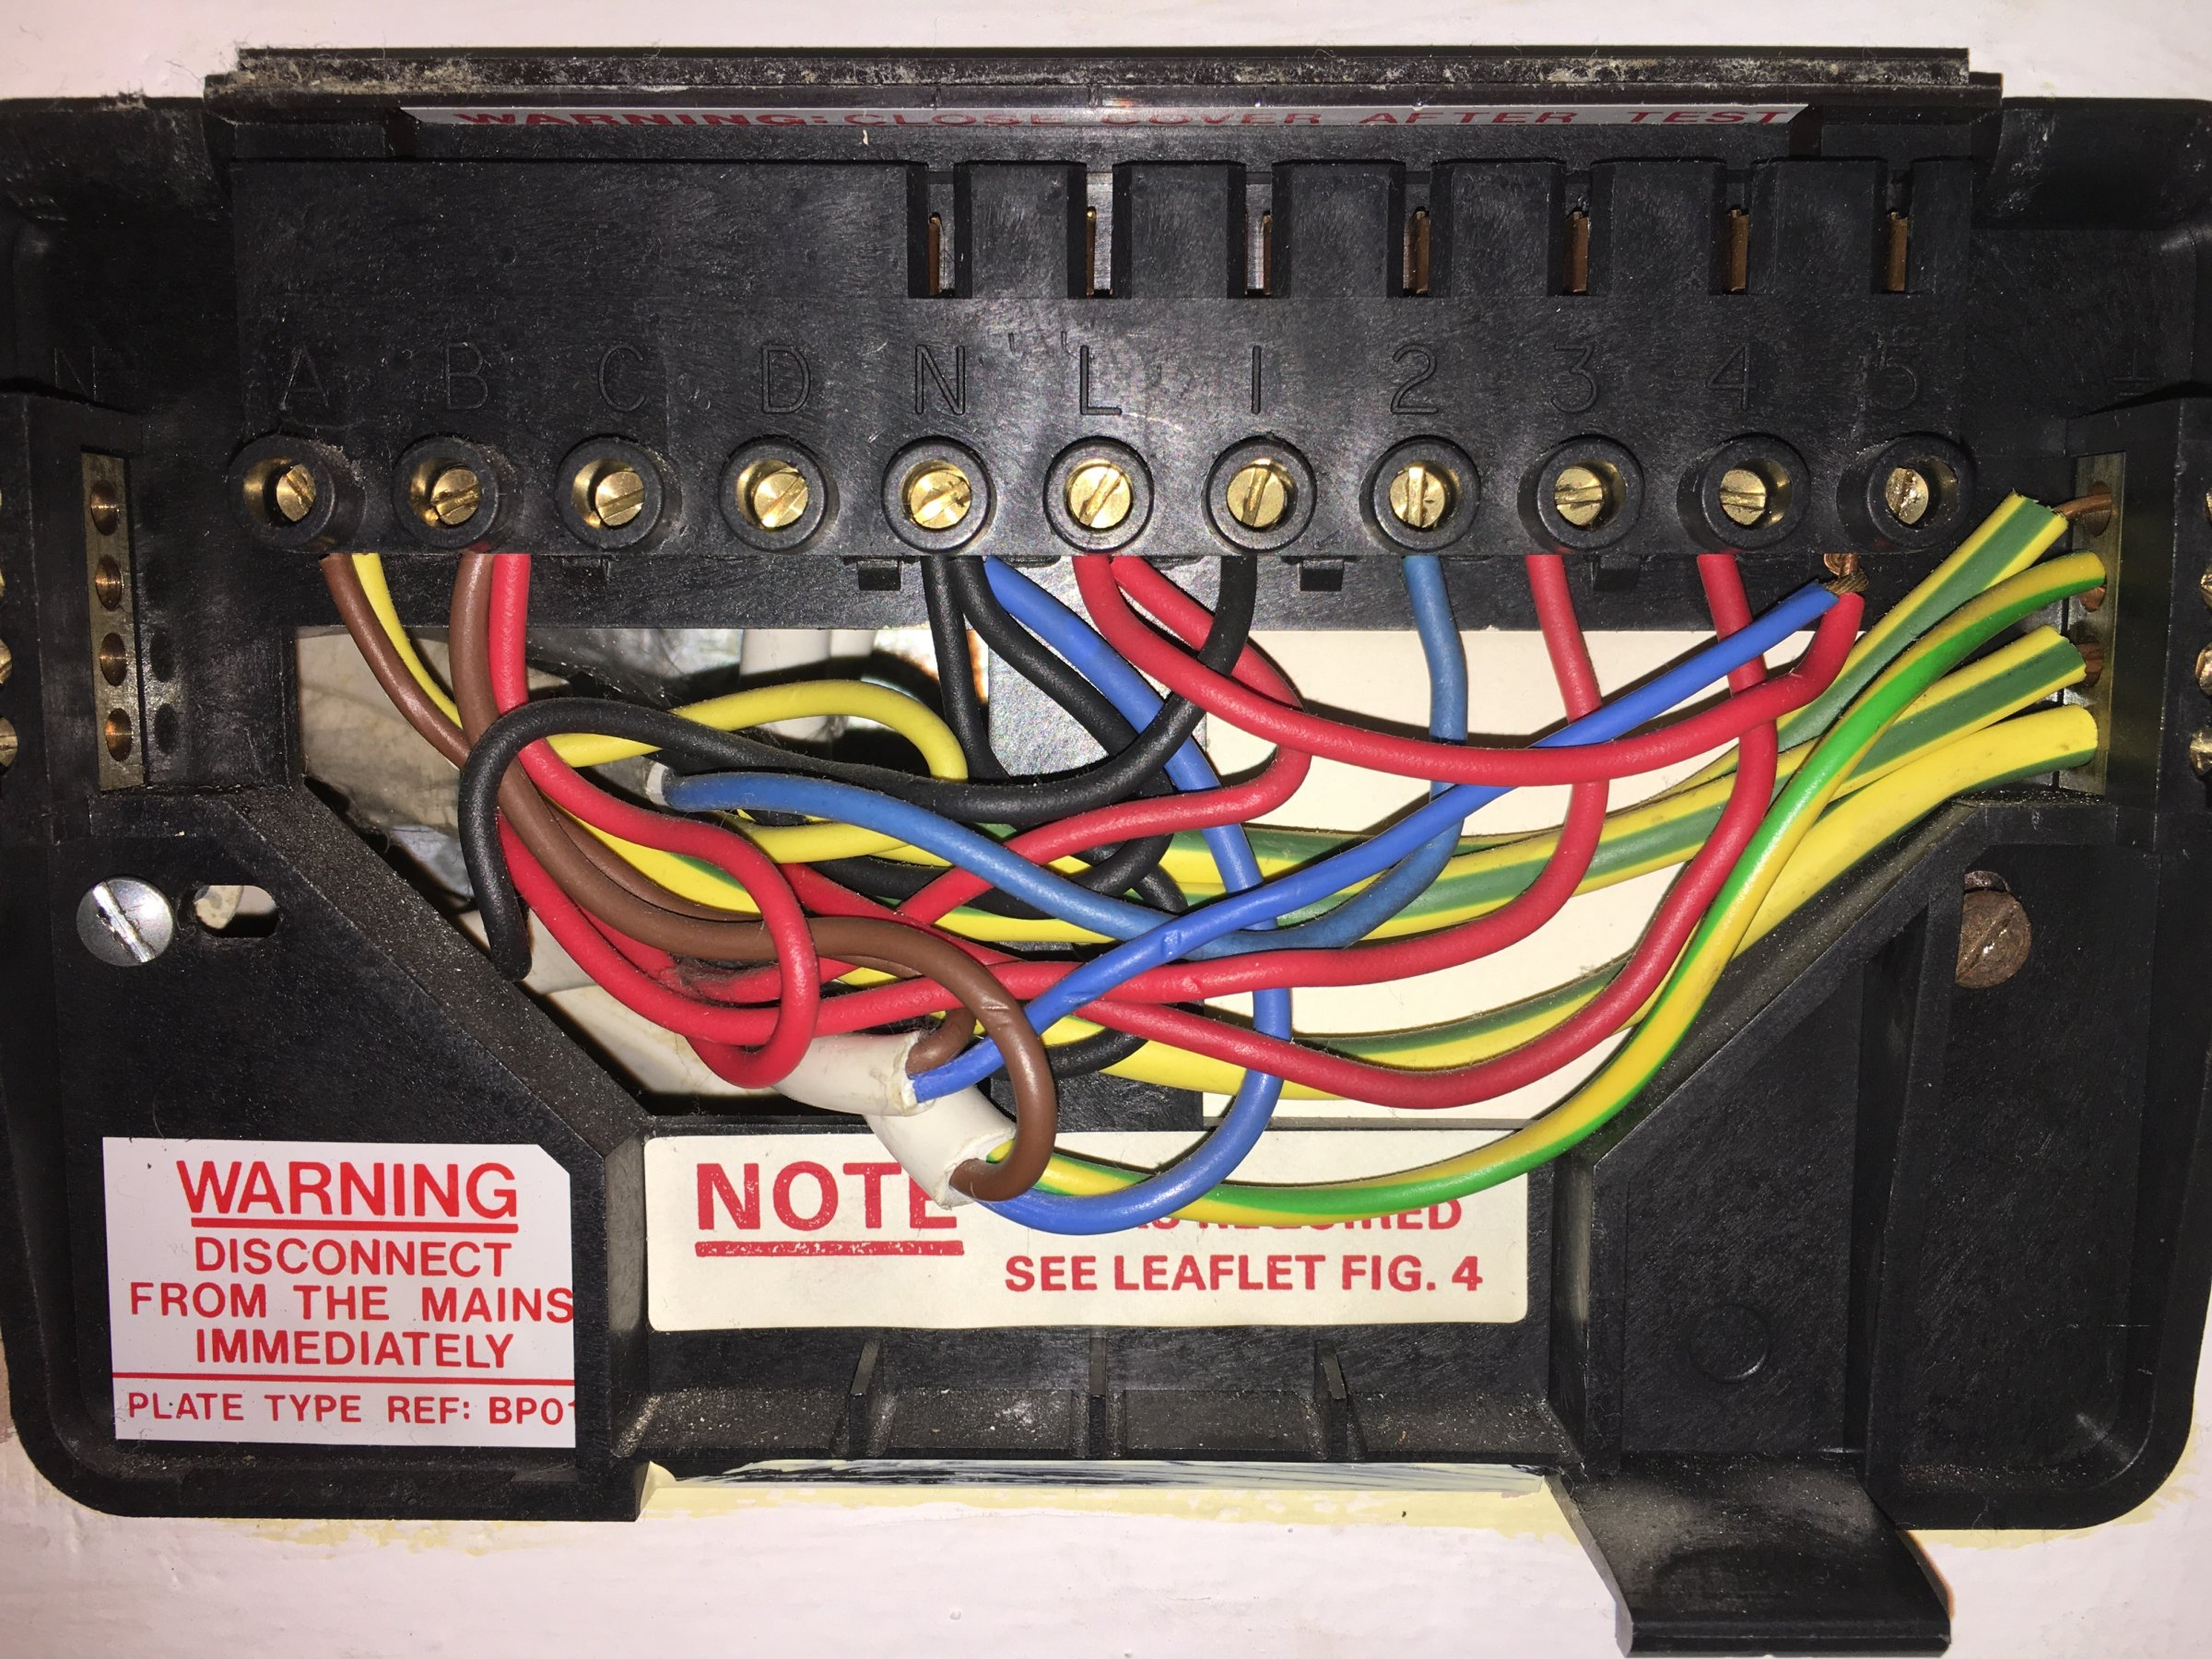 Junction Box Wiring Diagram Nest 3rd Gen To Replace Potterton Ep2002 Please Check My